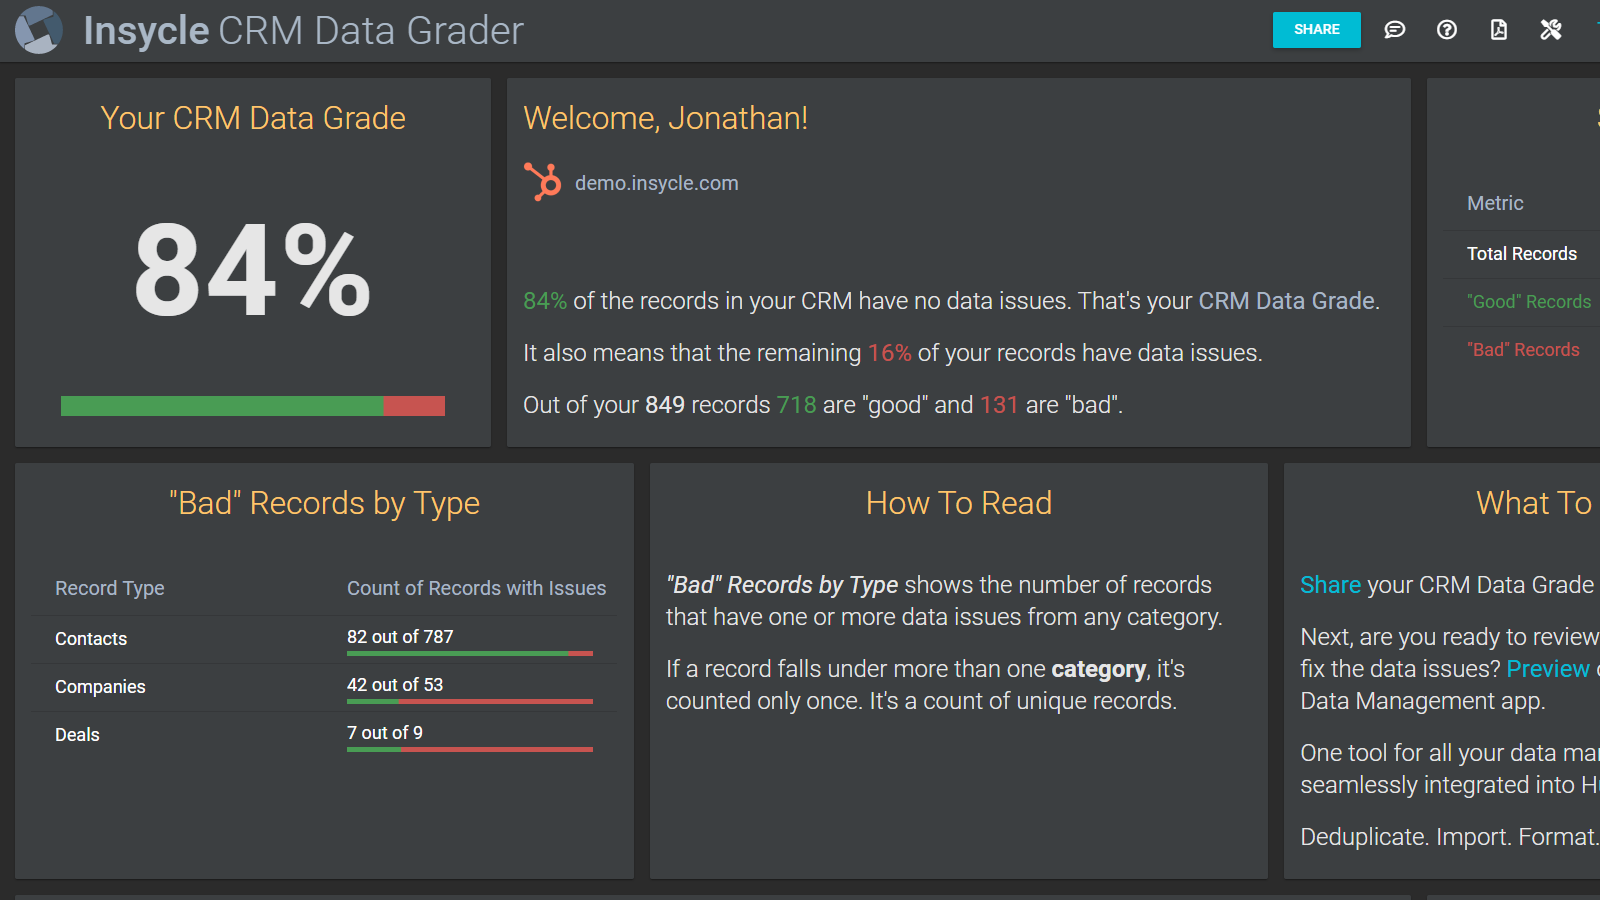 Report from CRM Data Grader